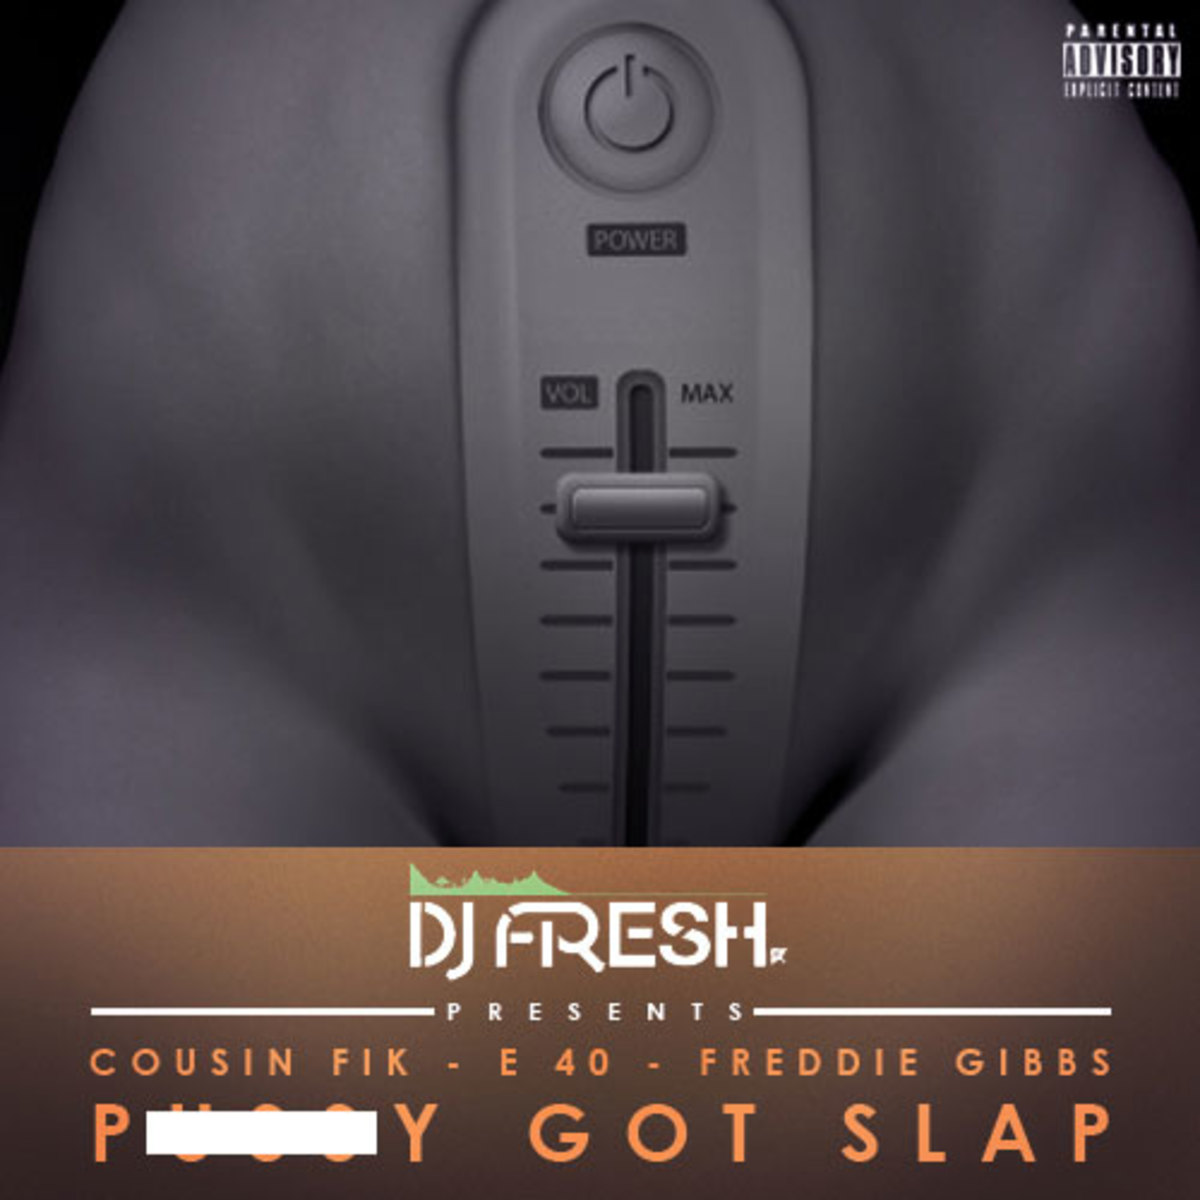 djfresh-pgotslap.jpg